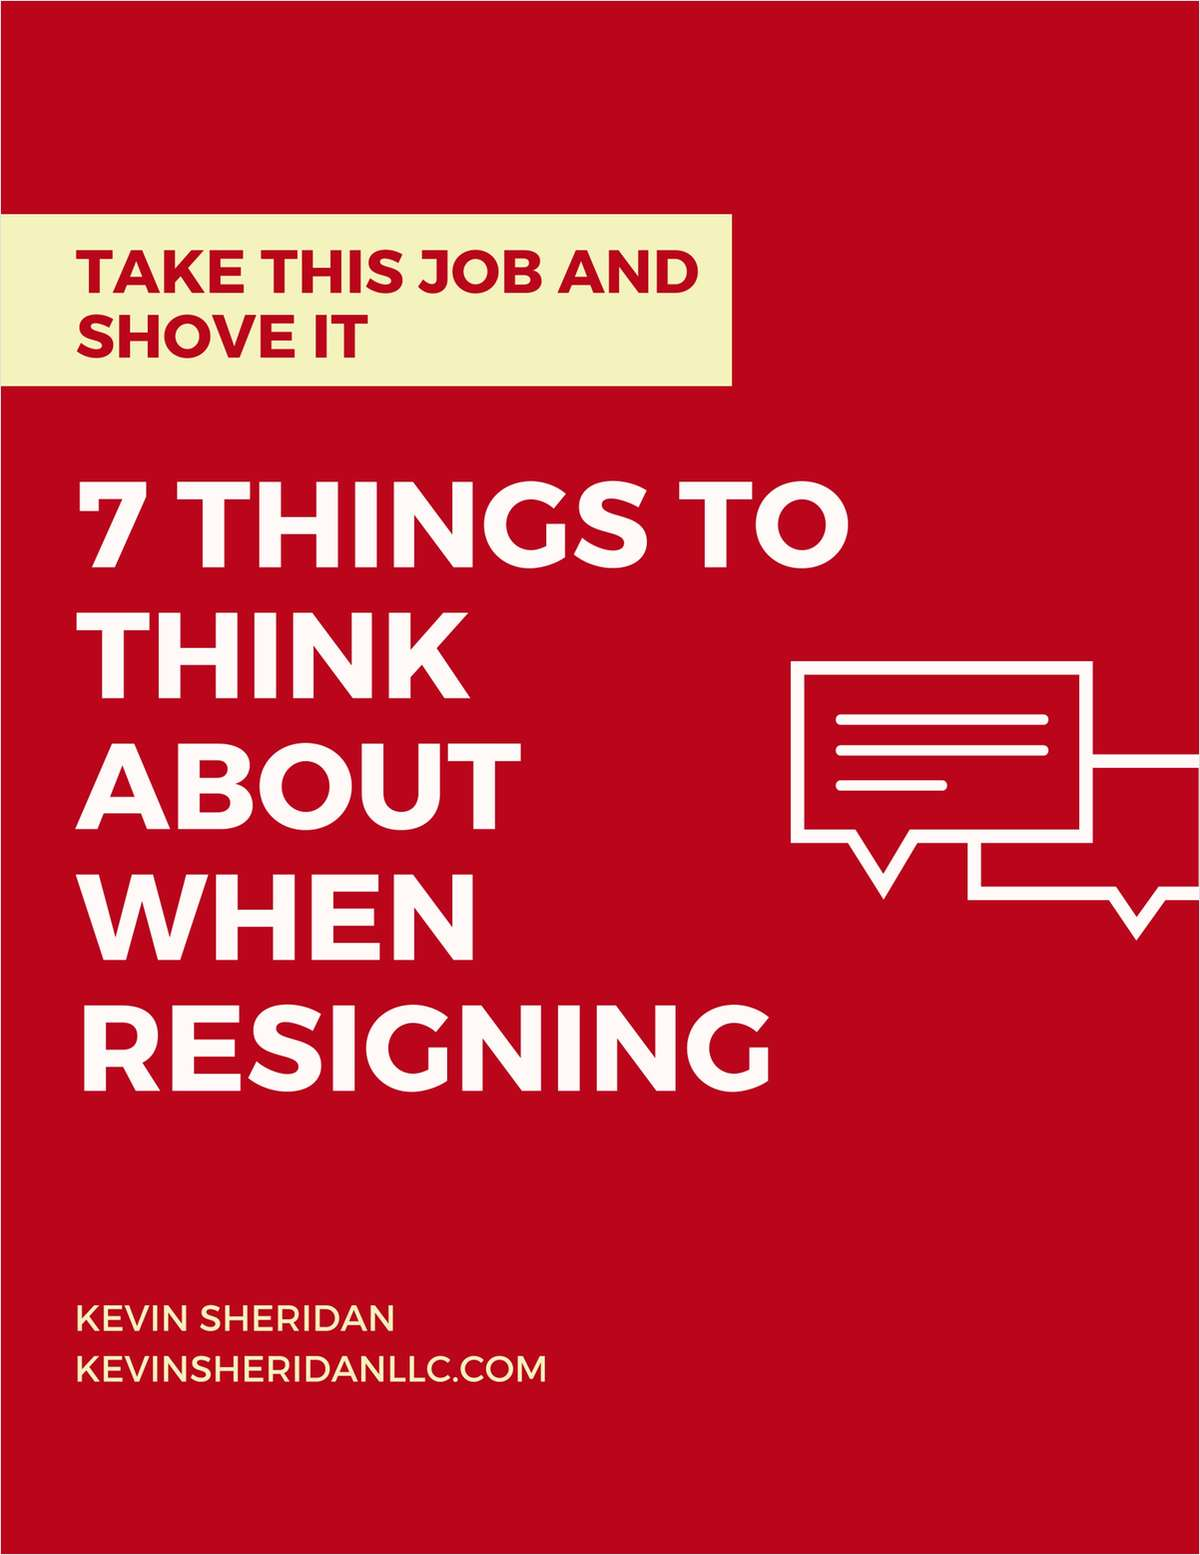 Take This Job and Shove It - 7 Things to Think About When Resigning